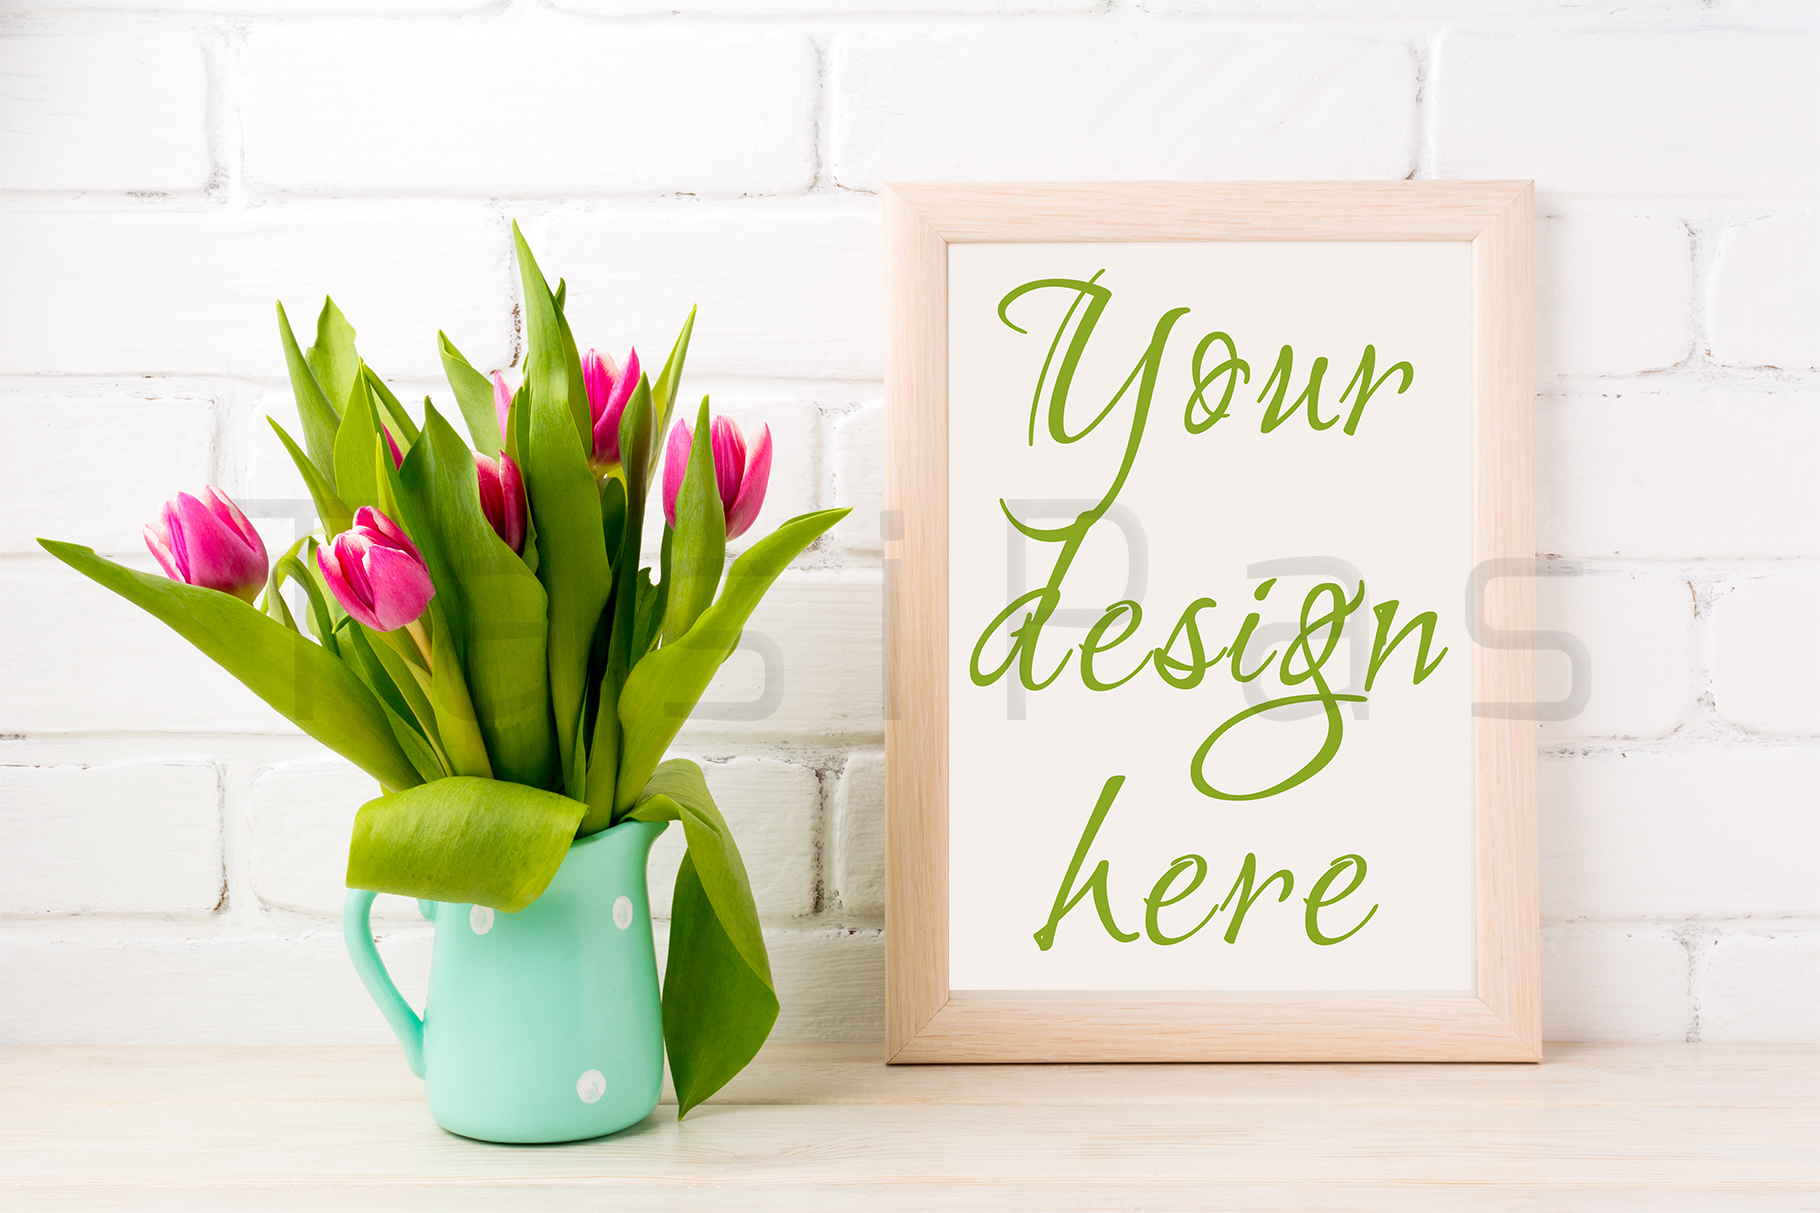 Wooden frame mockup with bright pink tulips bouquet in mint jug near white painted brick wall.  example image 2